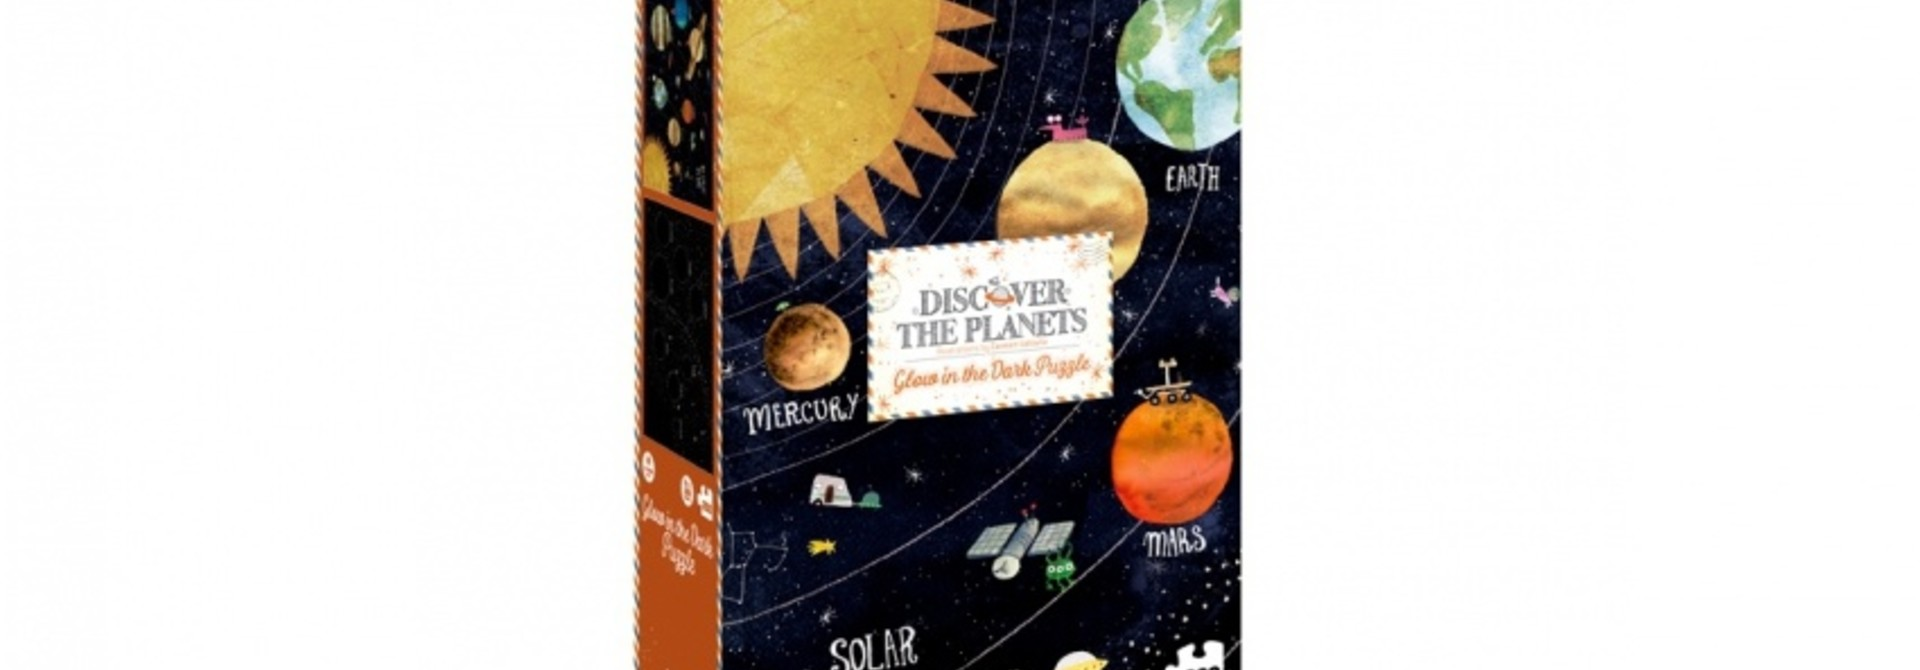 Puzzel Discover the Planets